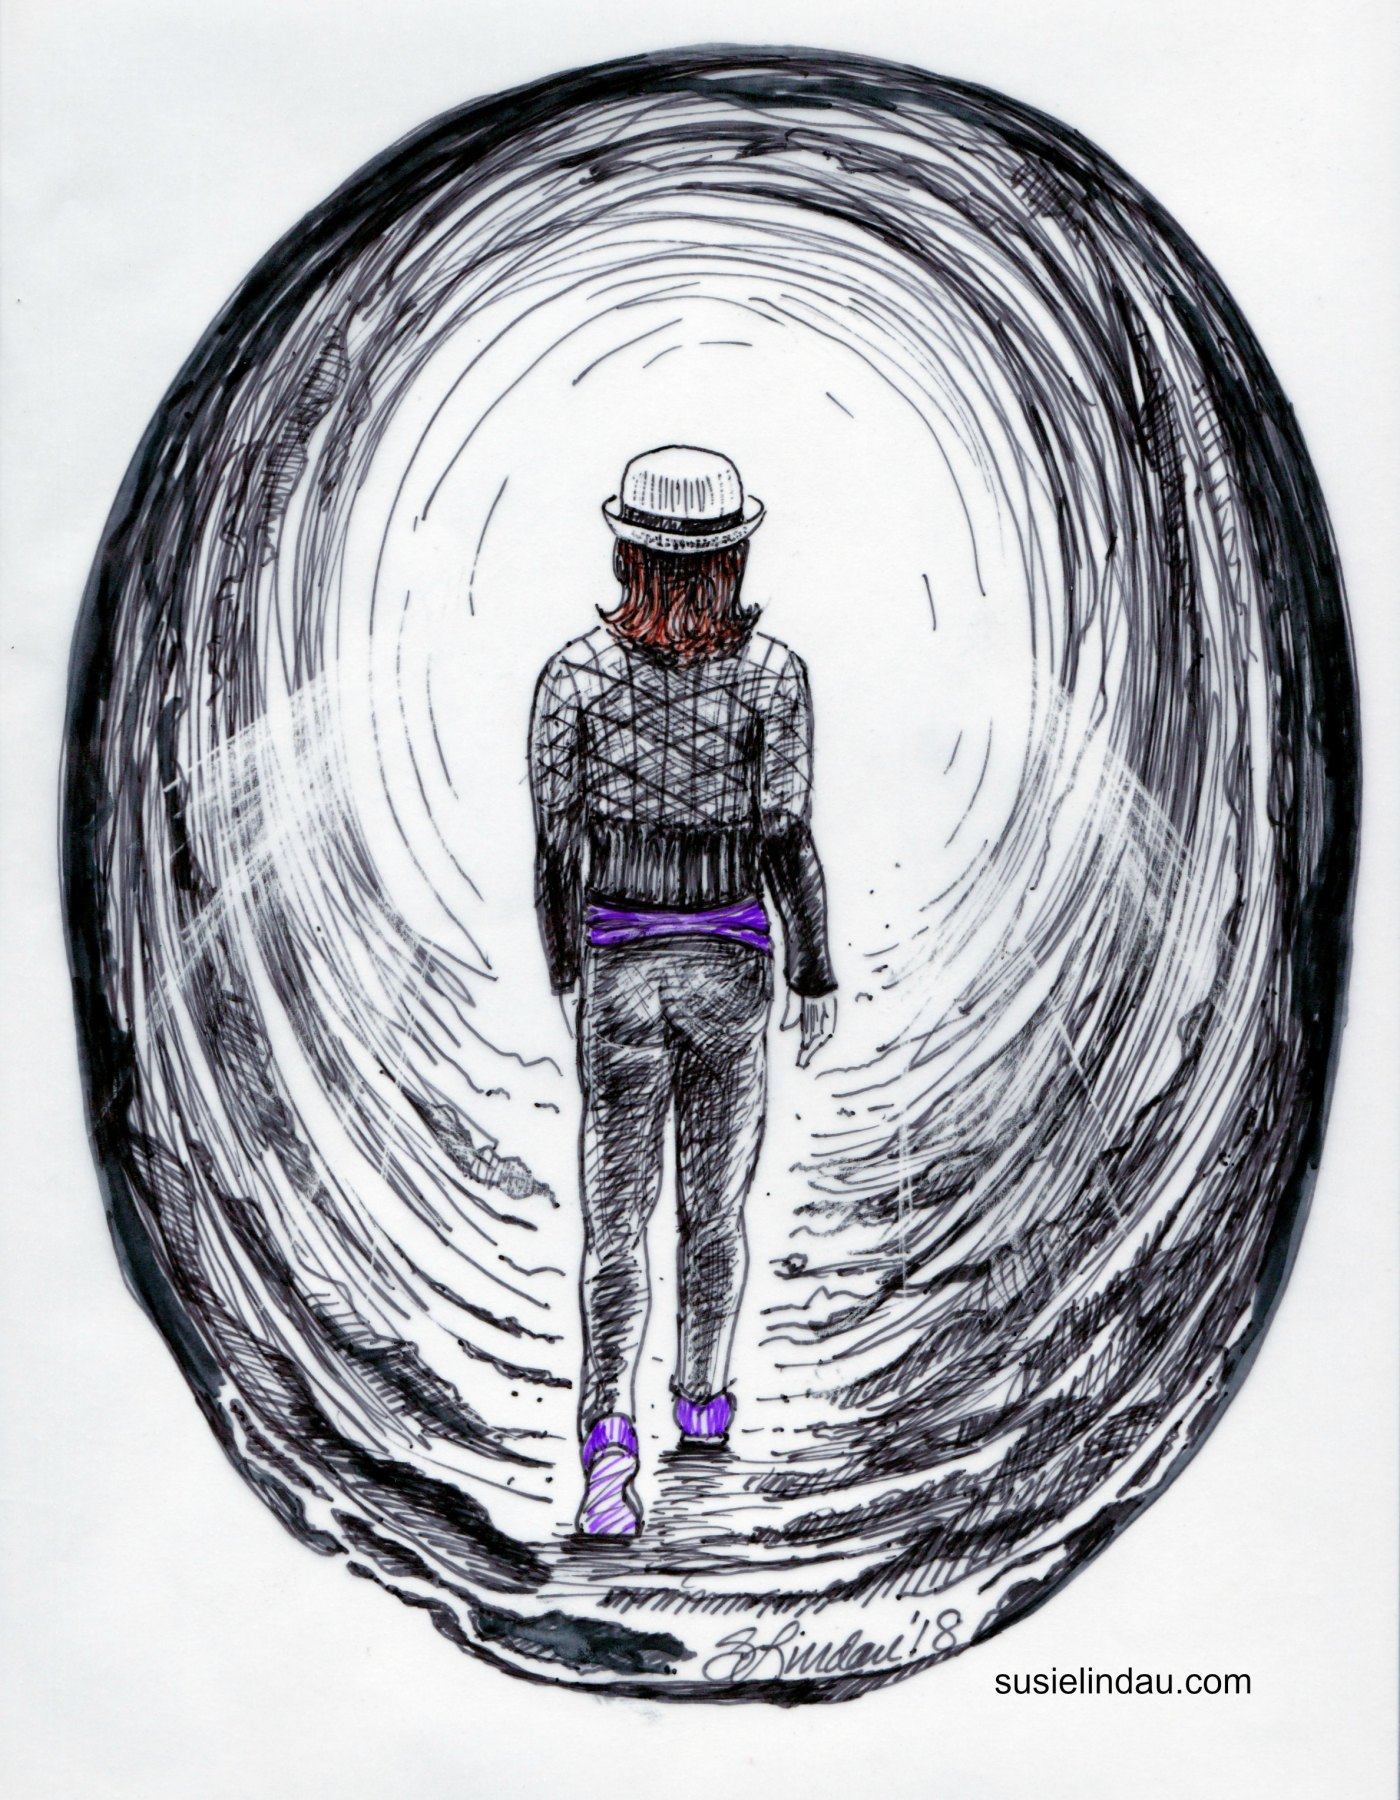 A self-portrait illustration of the light at the end of the tunnel